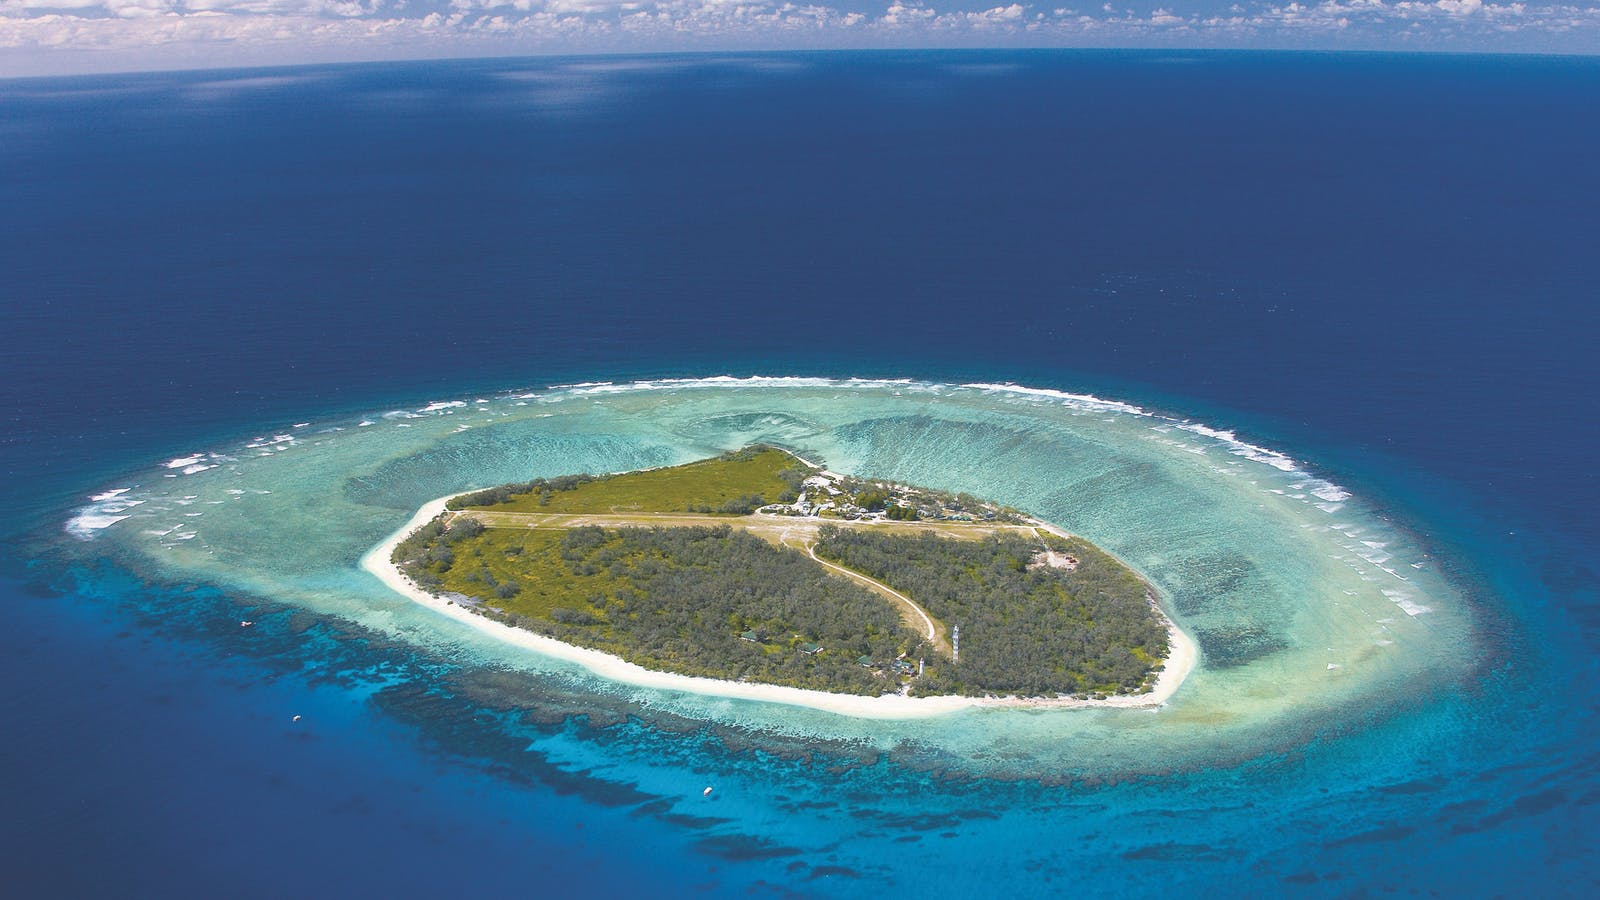 Aerial image of Lady Elliot Island